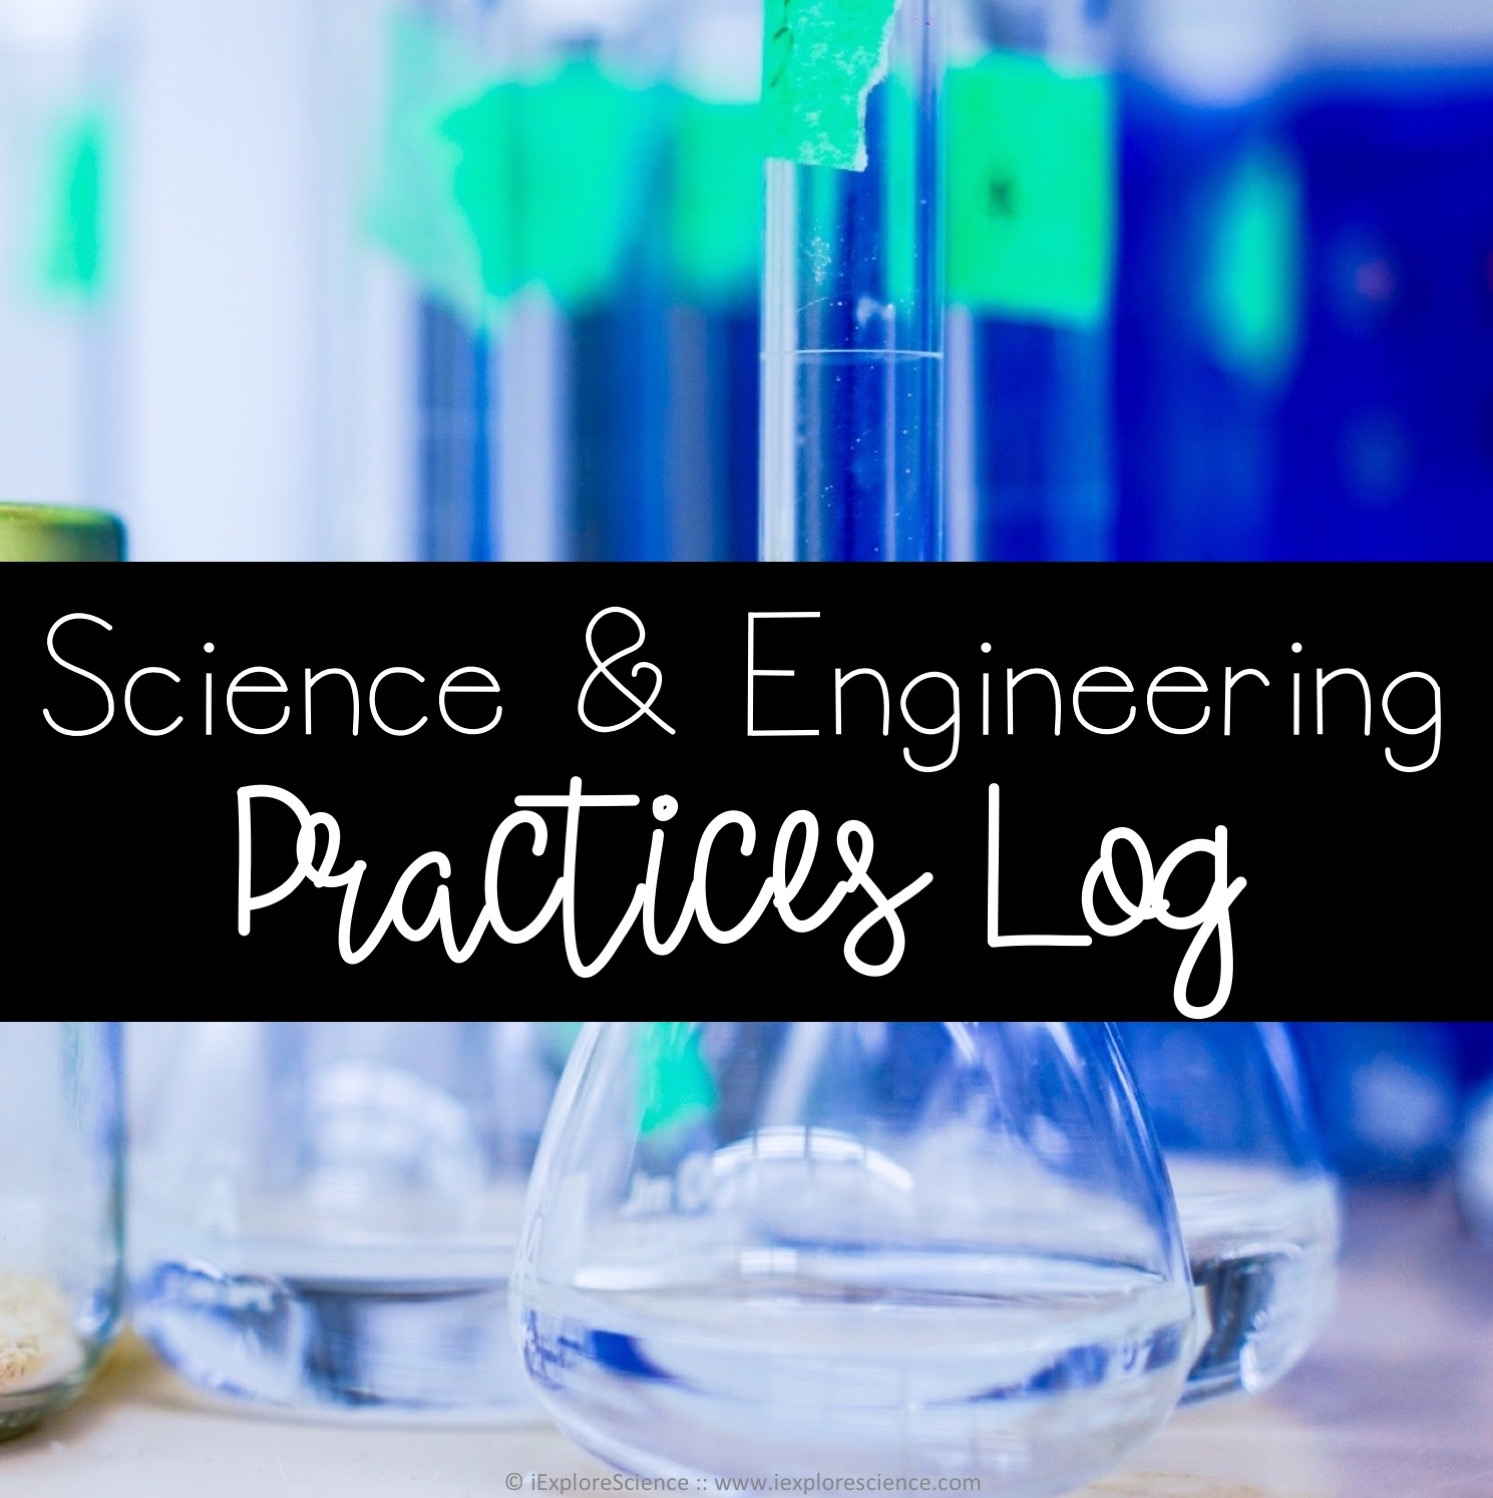 Science and Engineering Practices Log